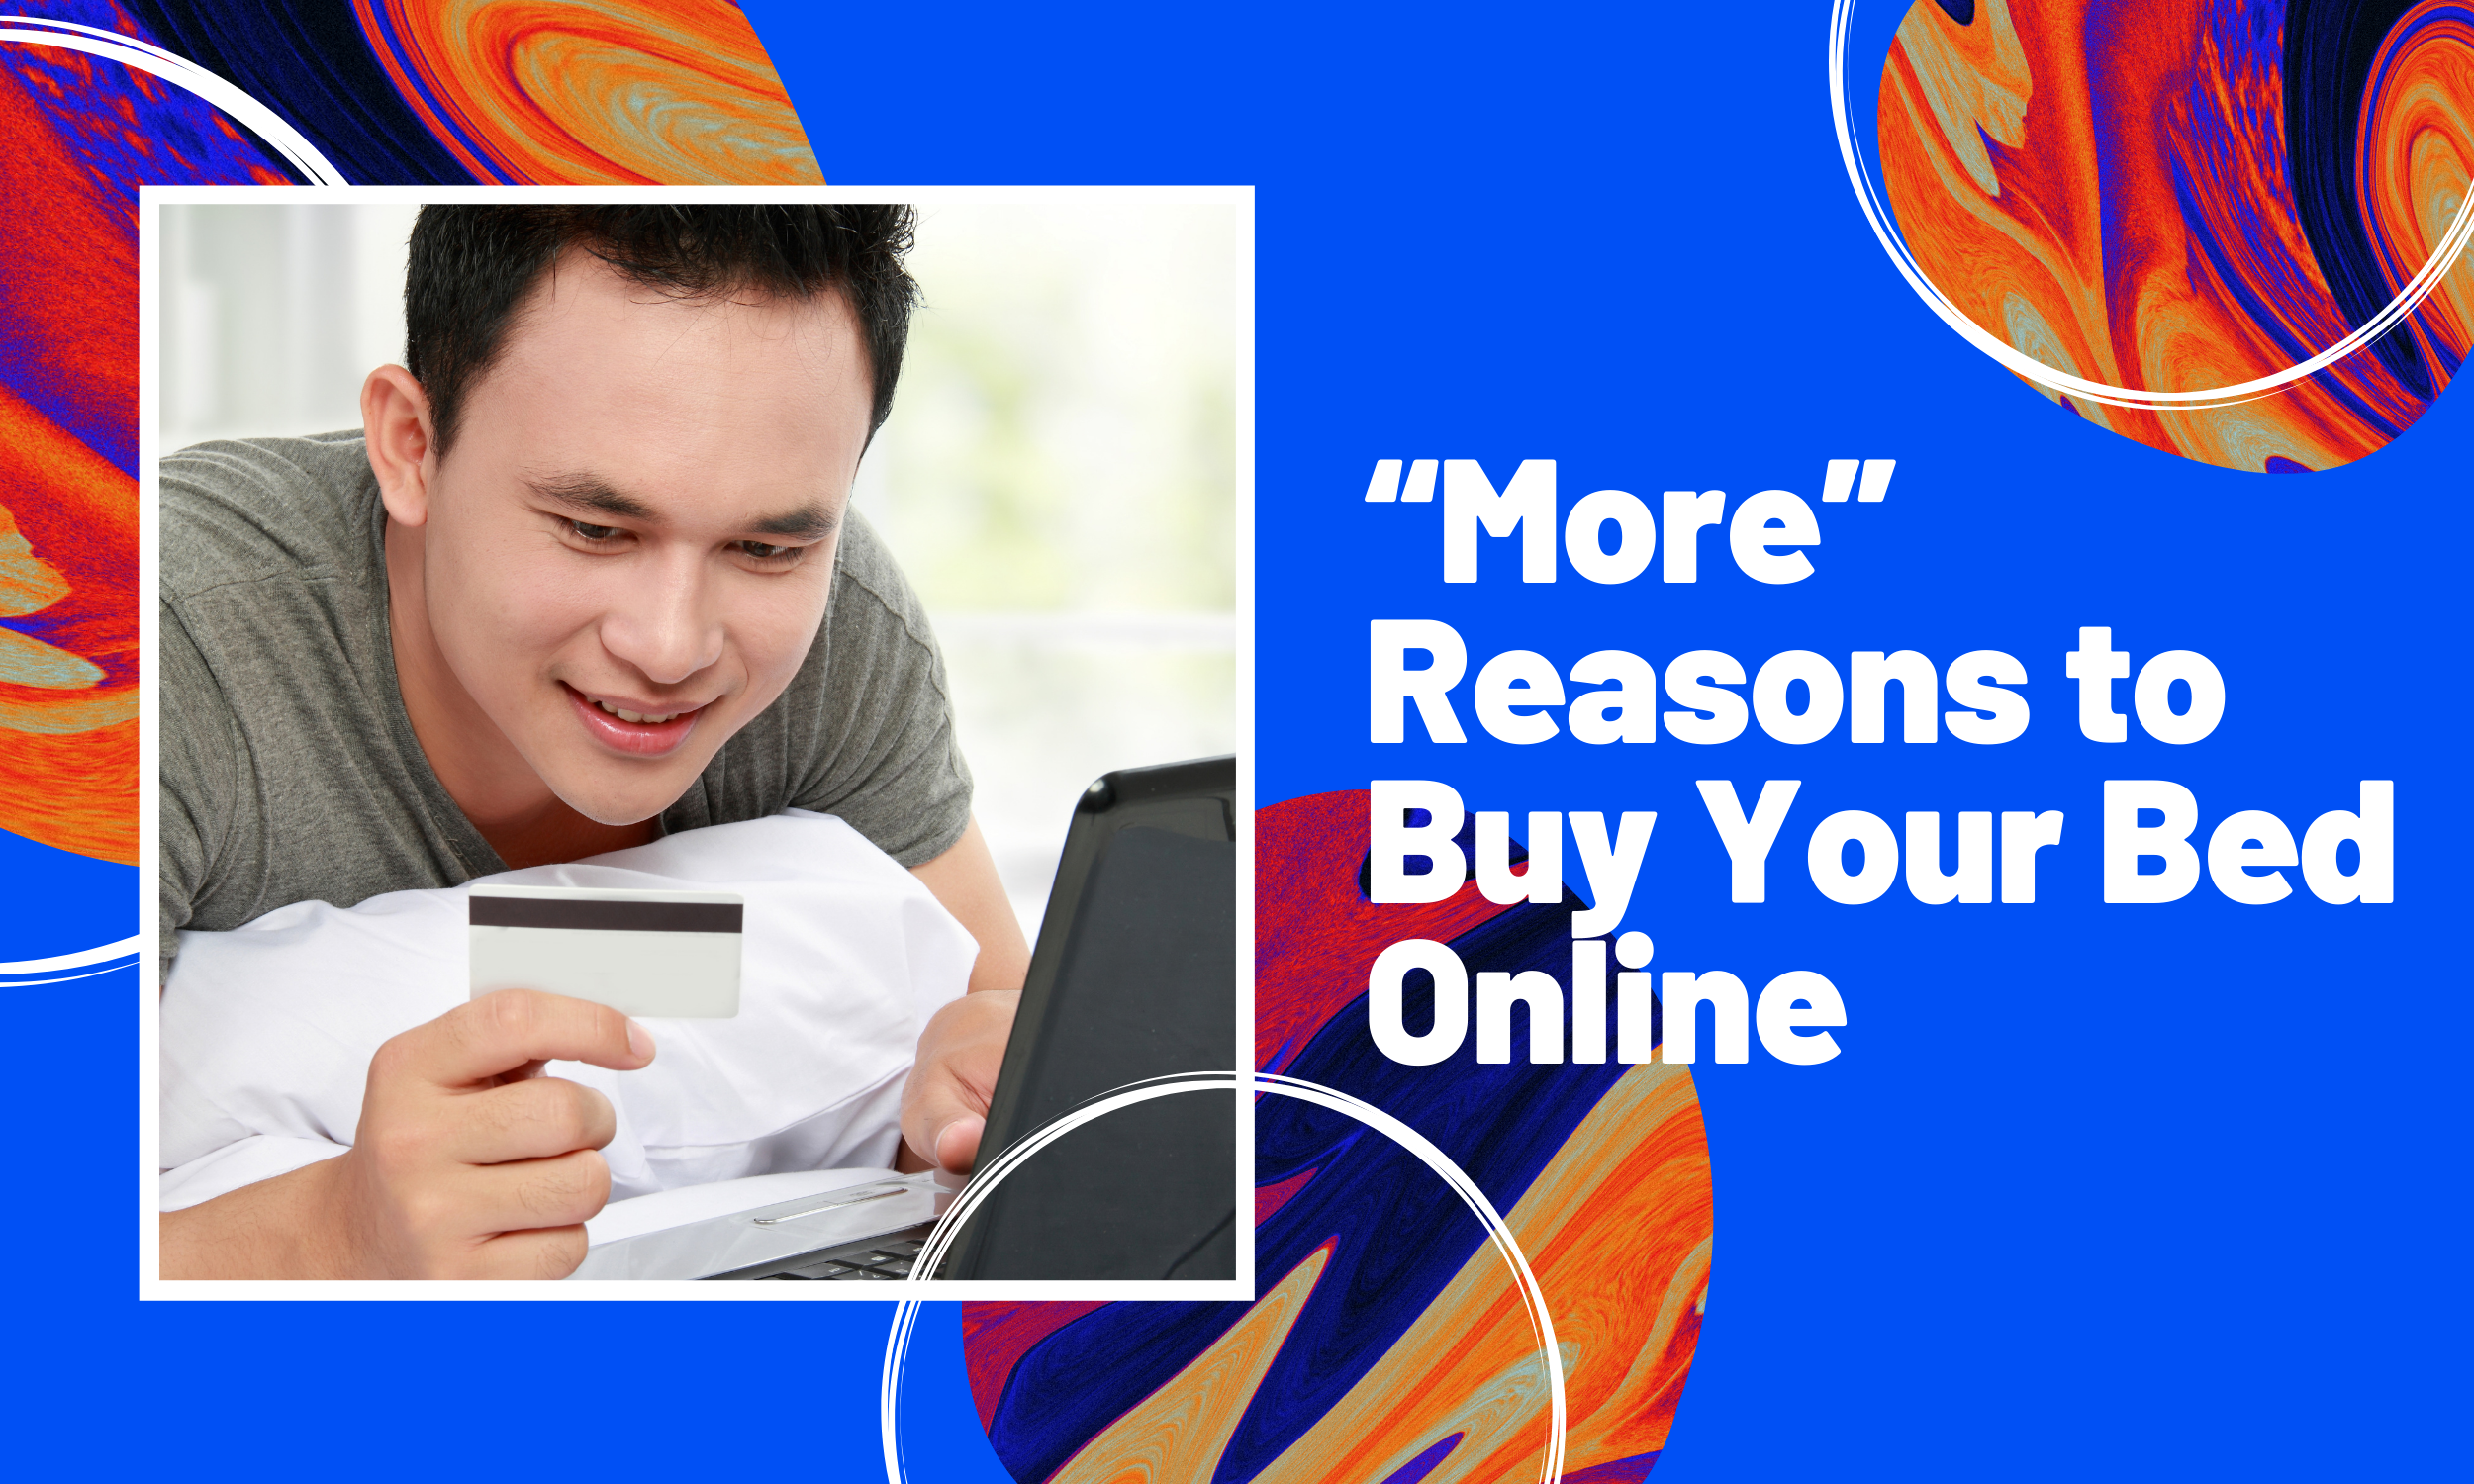 More-Reasons-to-Buy-Your-Bed-Online